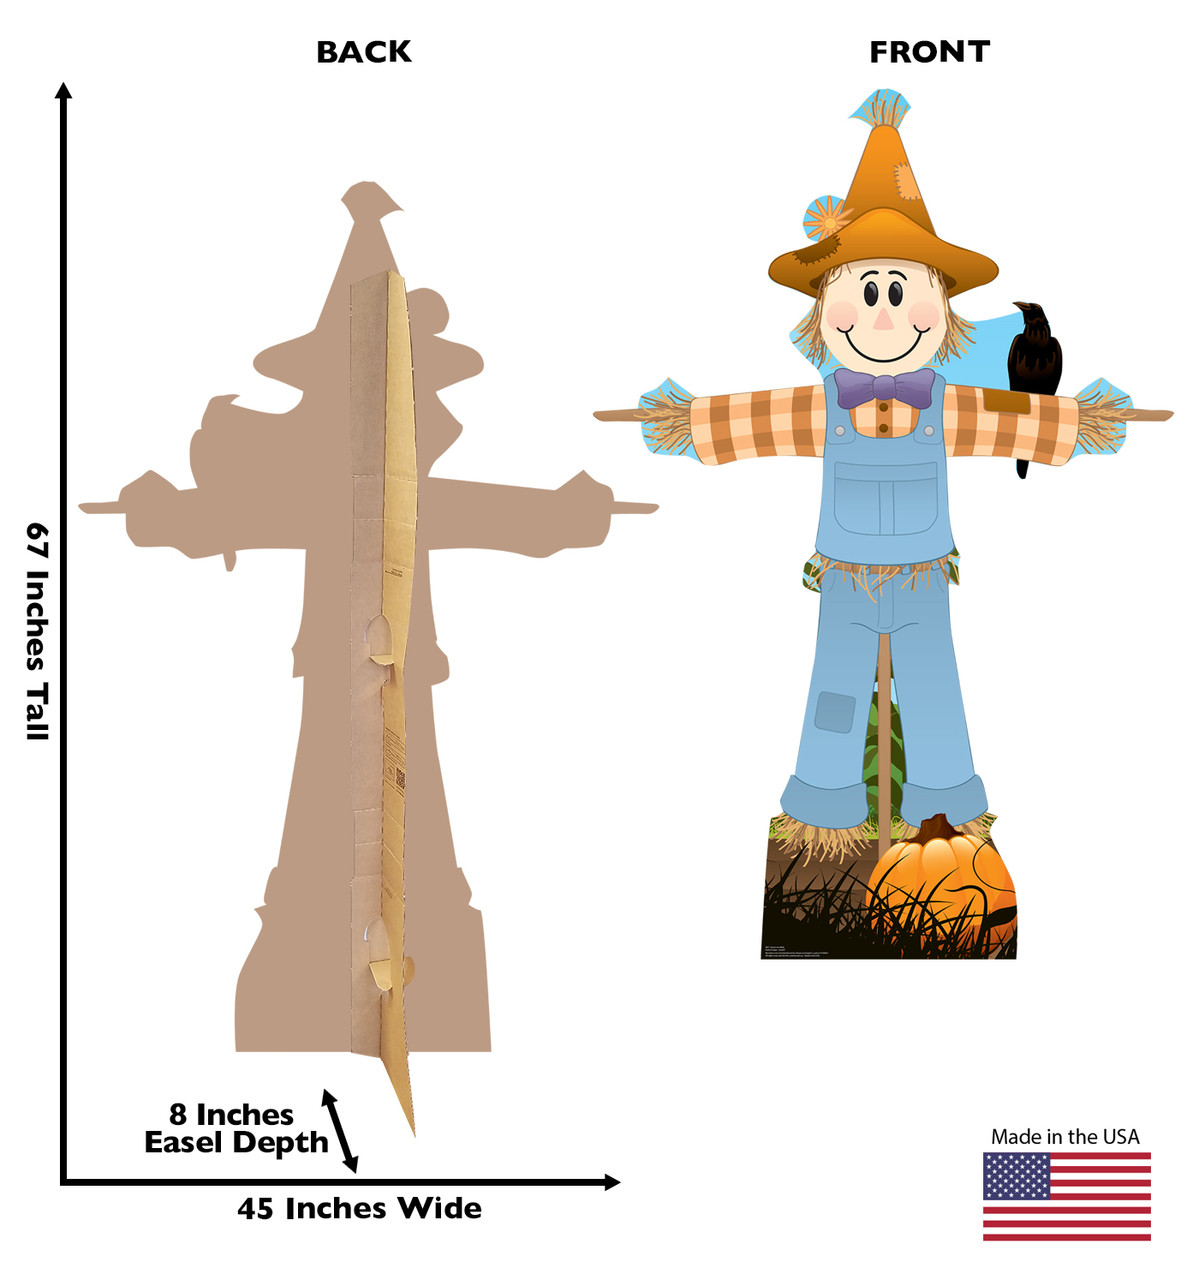 Life-size cardboard standee of Scarecrow Male. View of back and front of standee with dimensions.